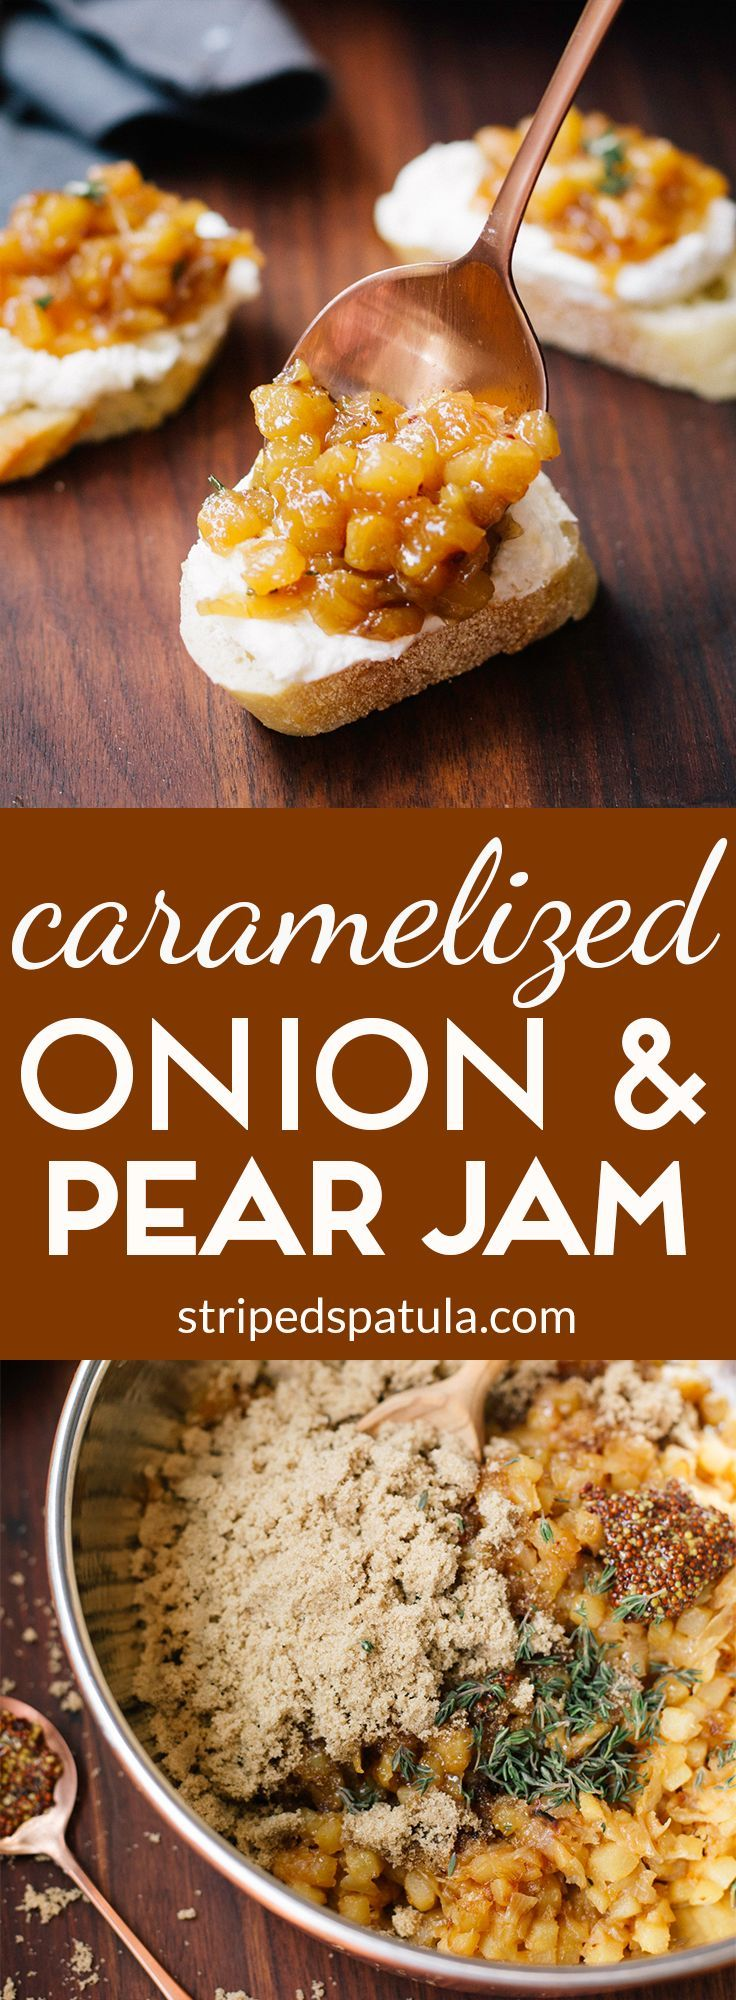 With brown sugar, white balsamic vinegar, whole grain Dijon, and thyme, this sweet-savory jam is a great accompaniment to holiday cheese boards, spread atop whipped goat cheese crostini, or even alongside pork chops!